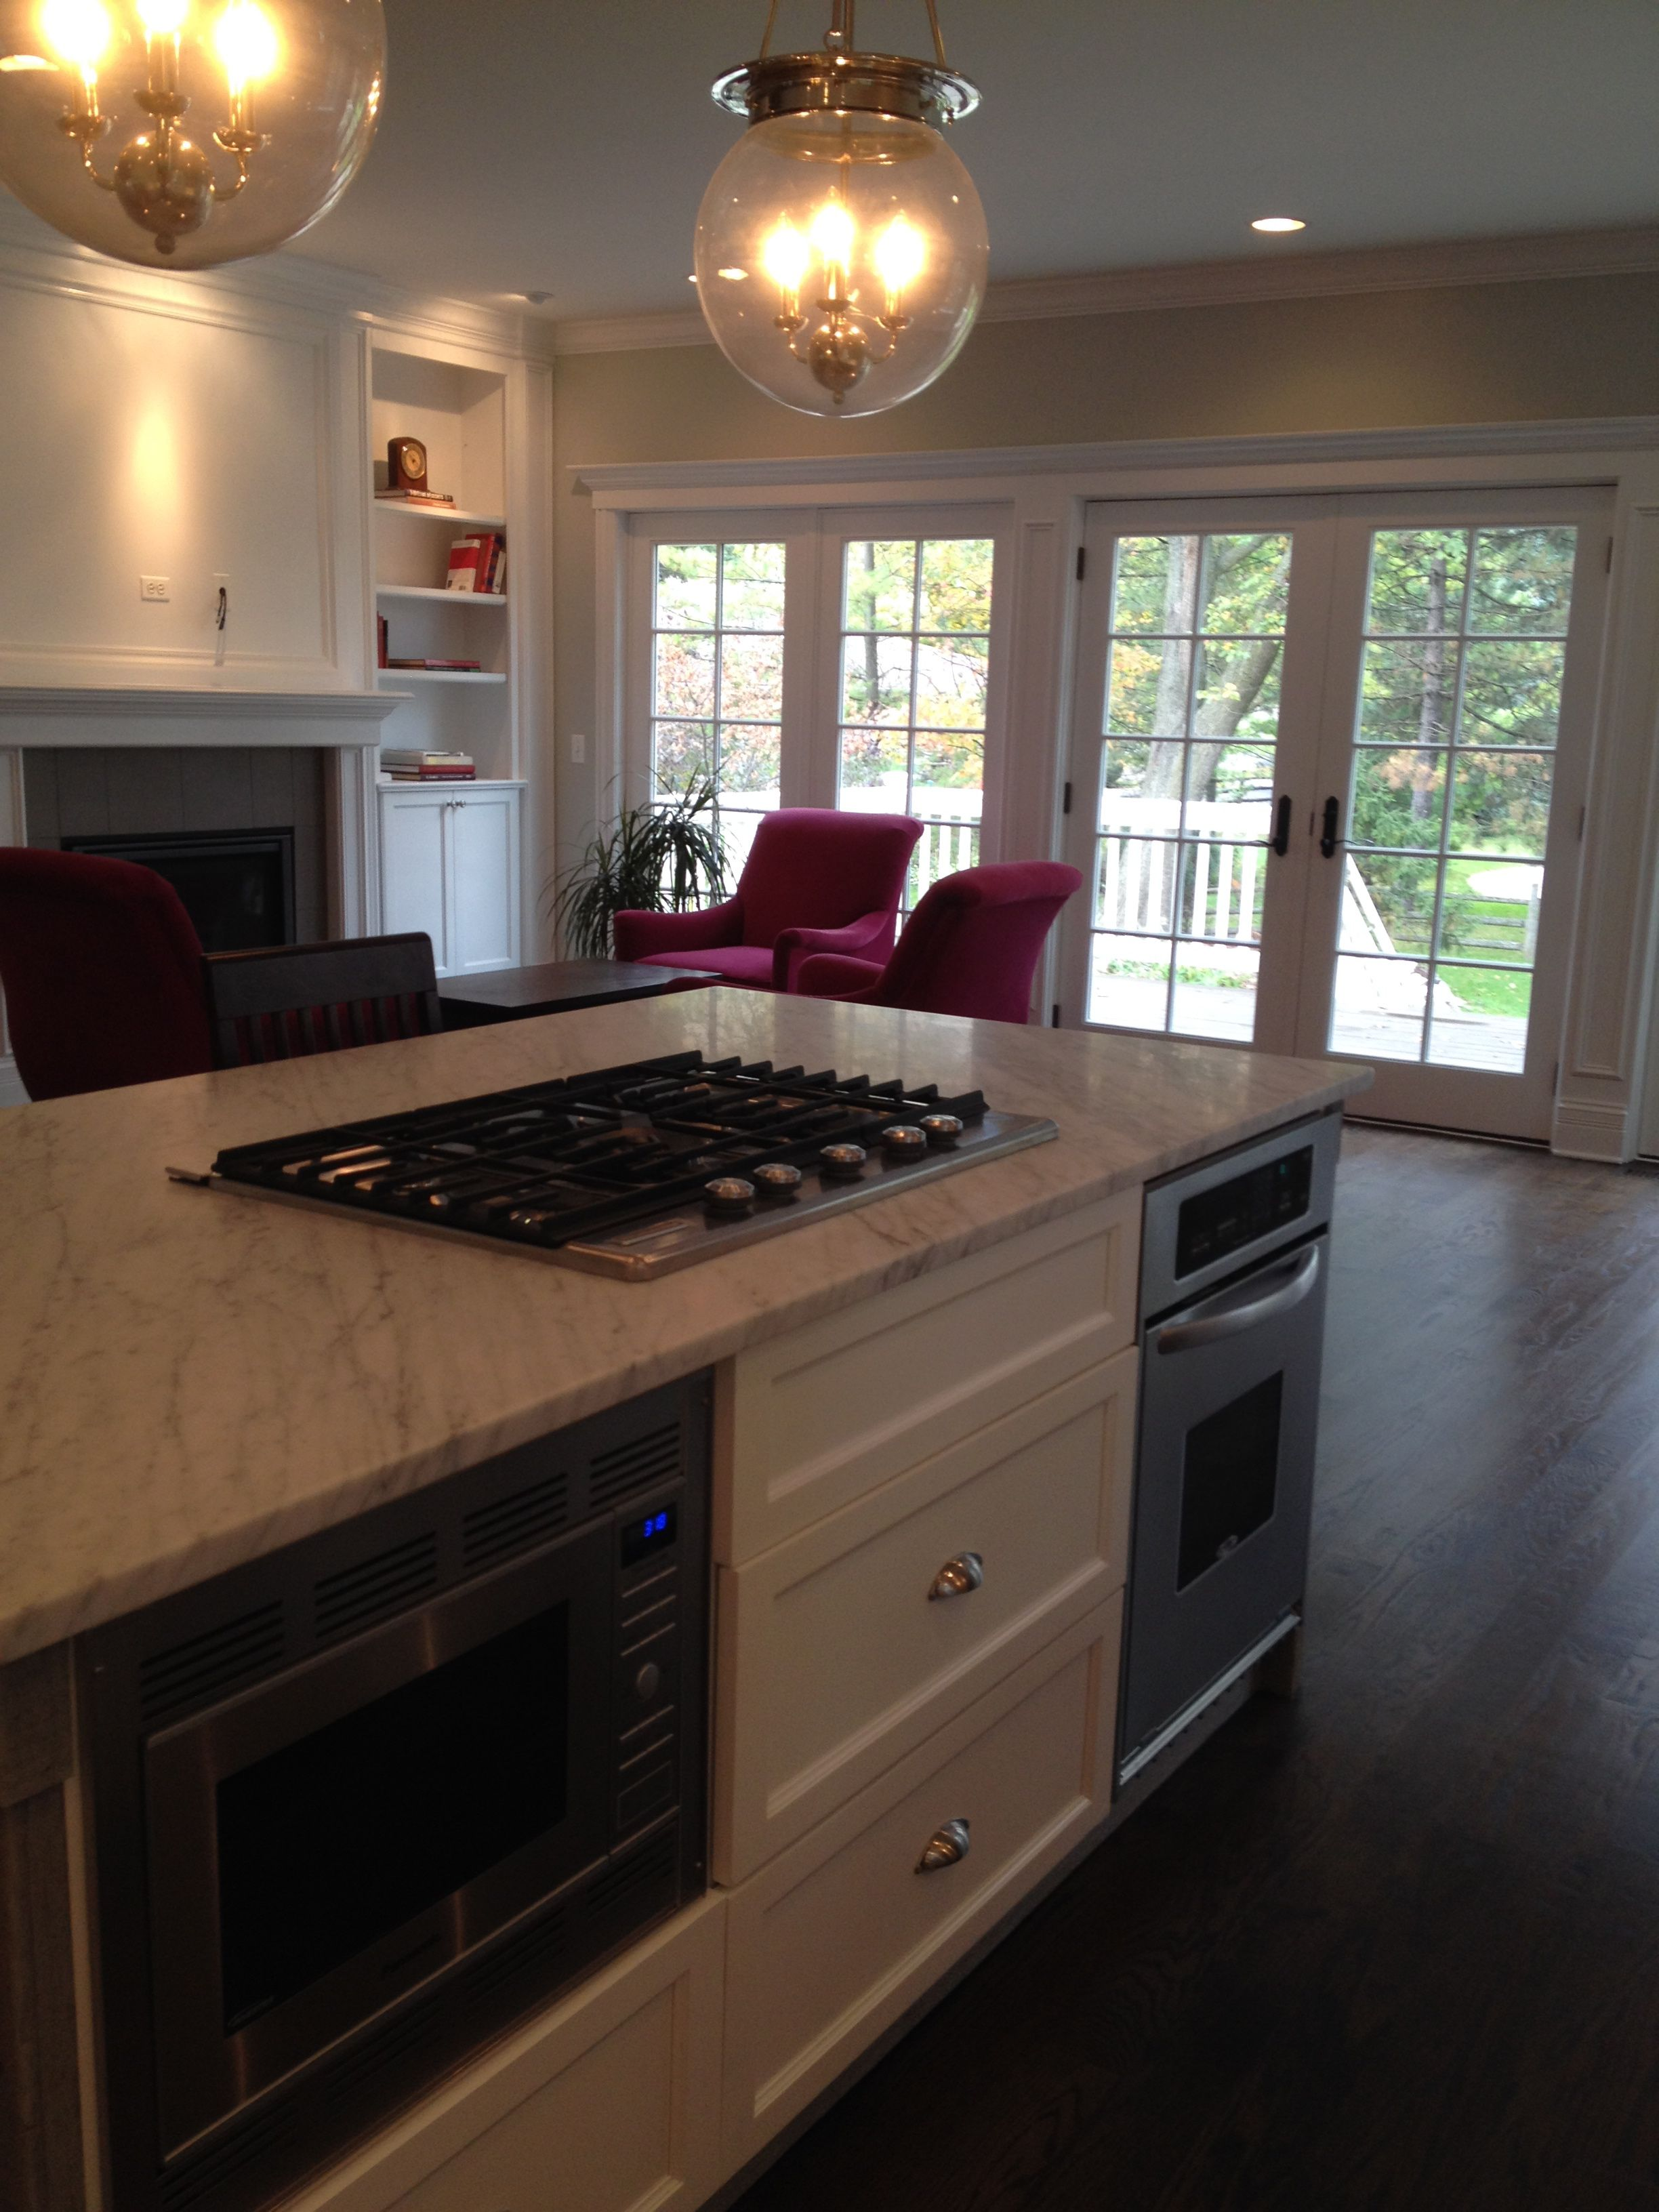 Kitchen Island With Carrara Marble Countertop Gas Cooktop 2nd